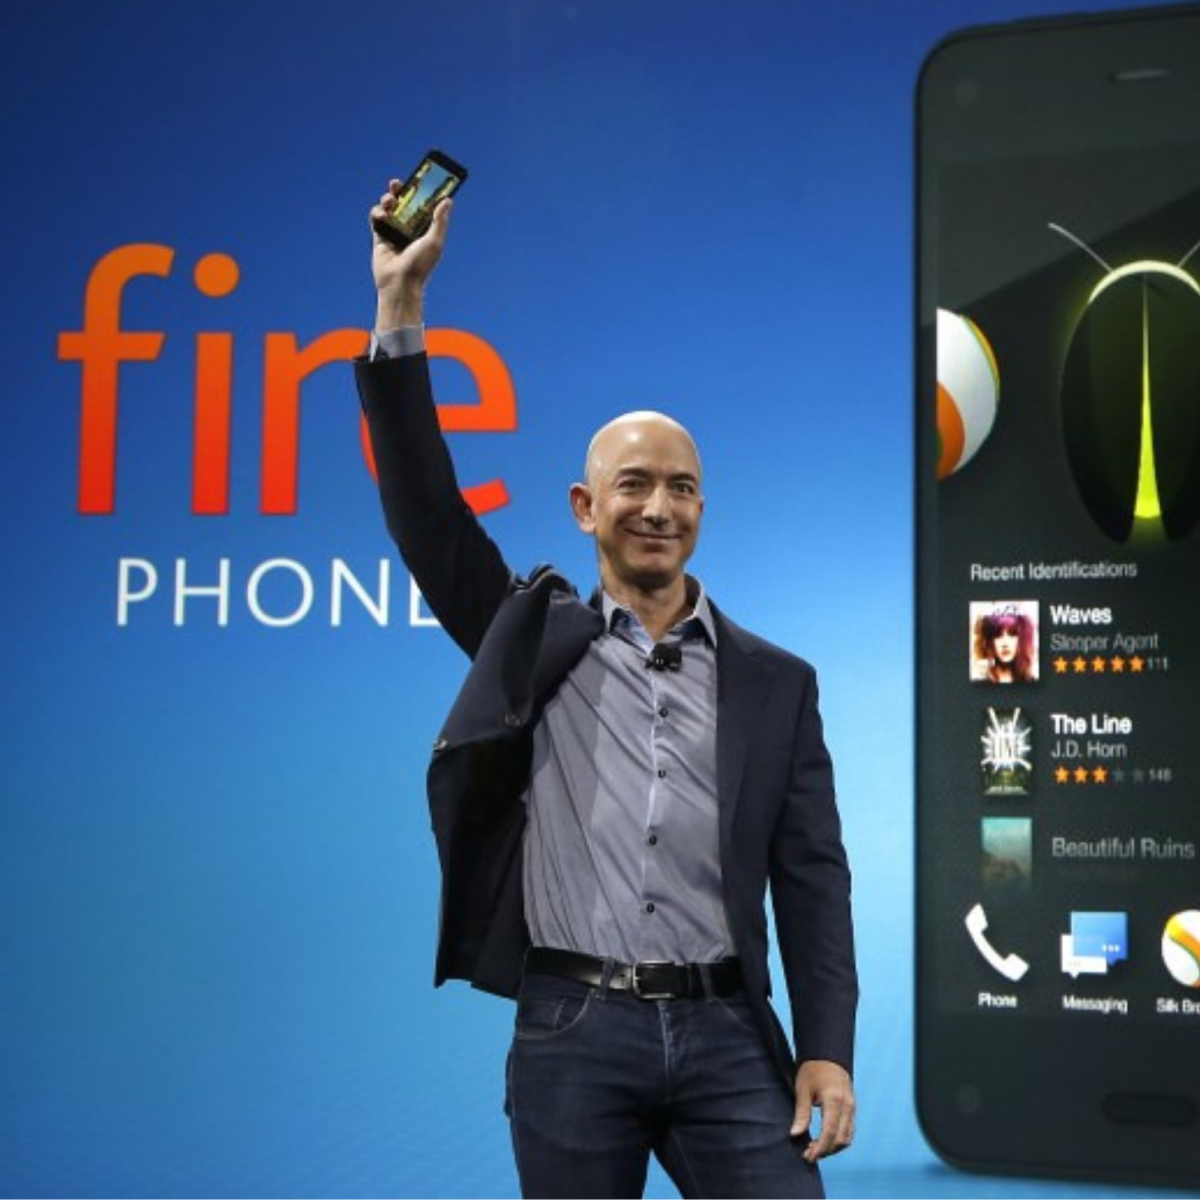 Why did the Amazon Fire Phone Fail?